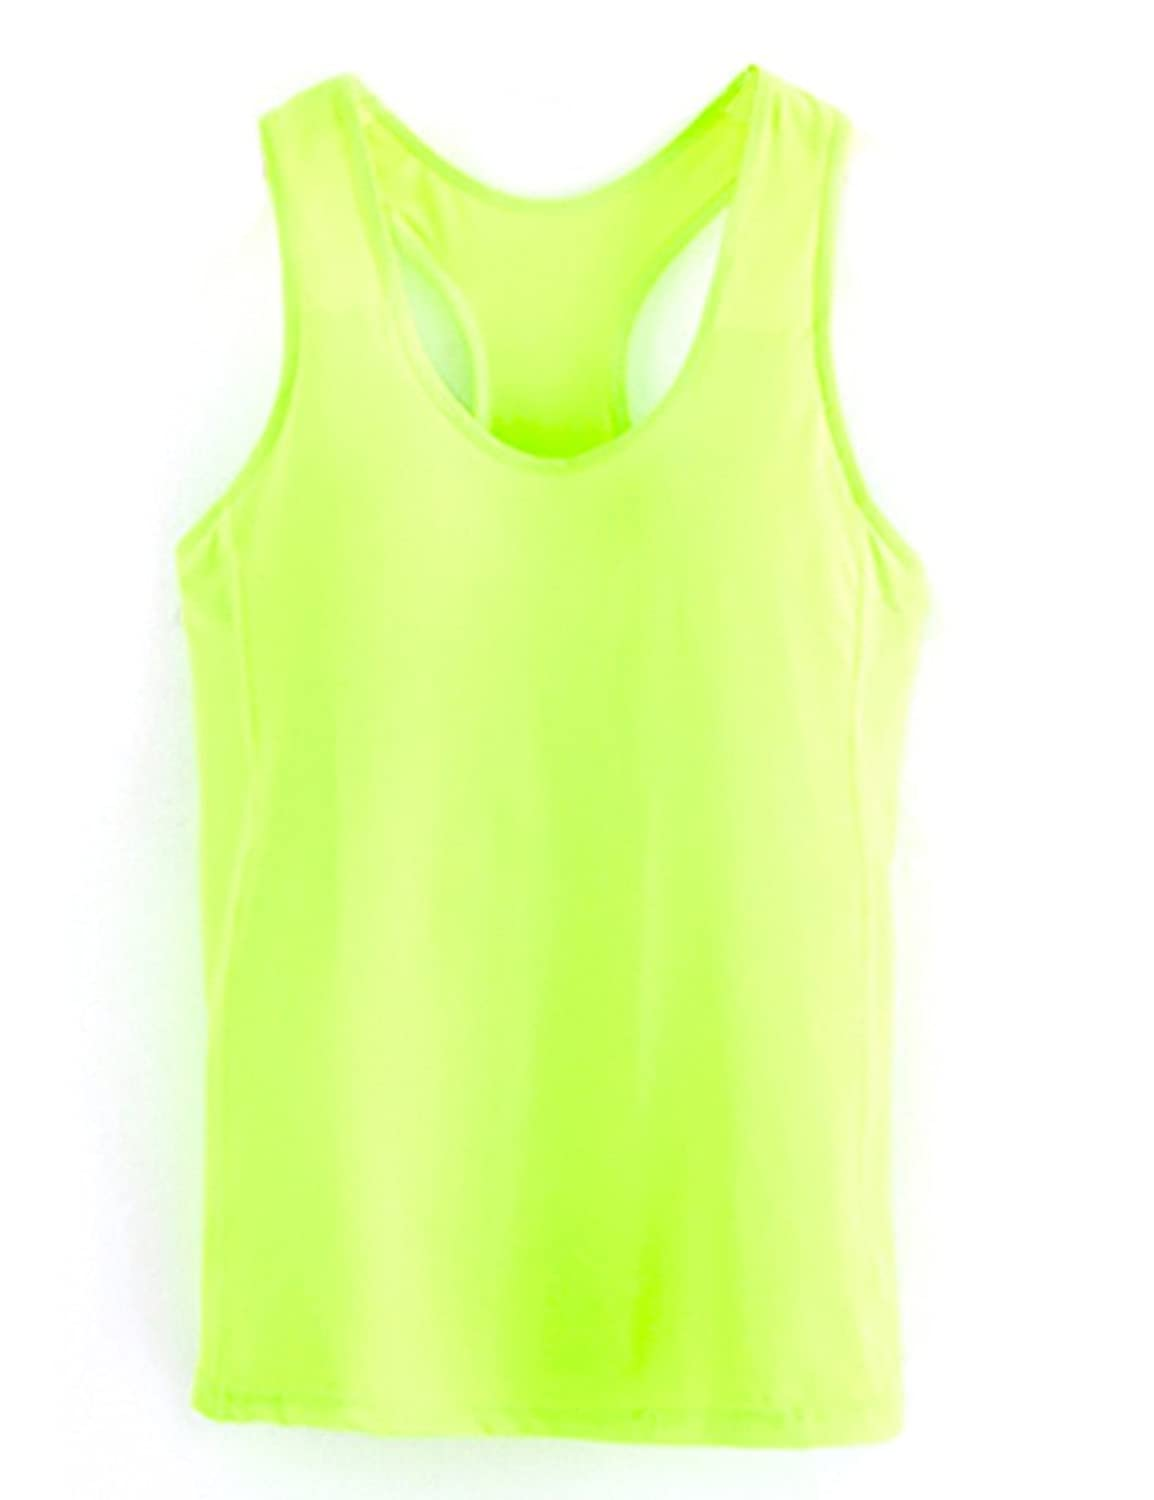 JIMMY DESIGN Damen Yoga Tank Tops - One Size